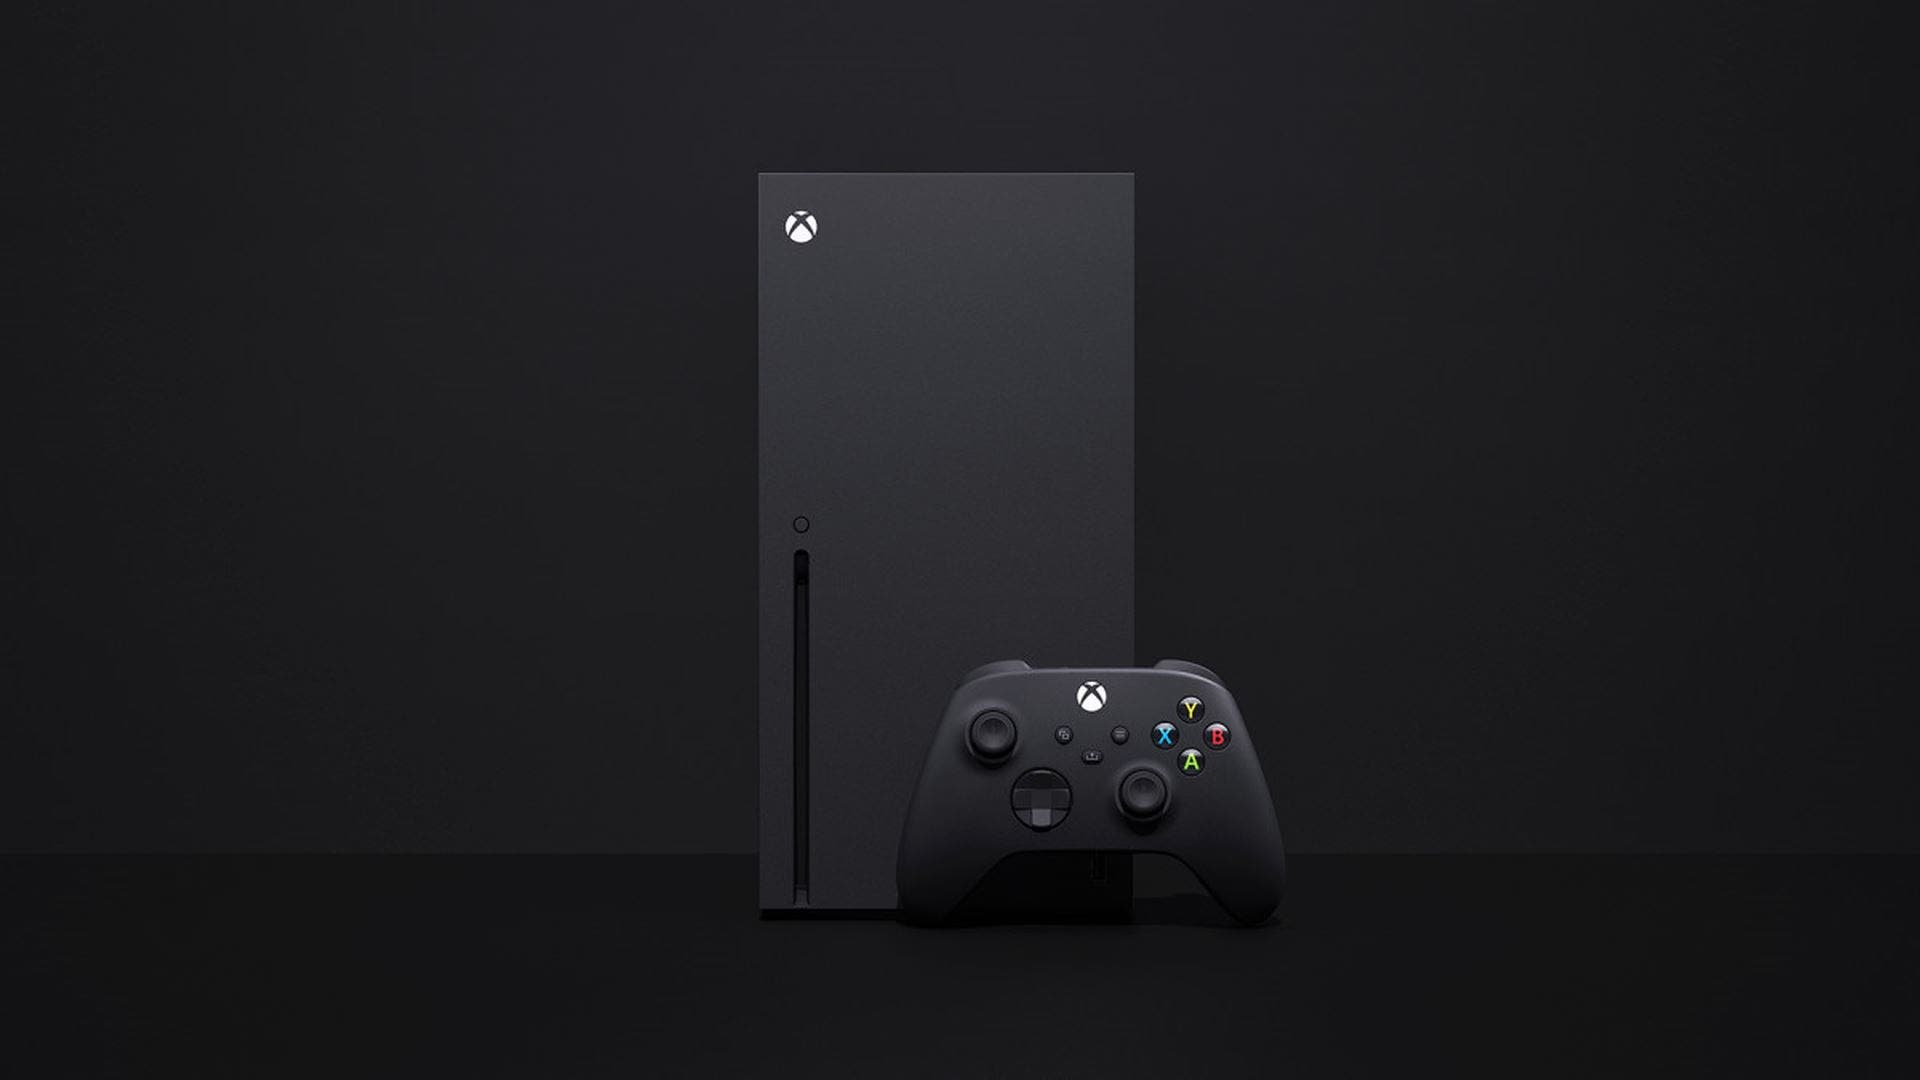 pedidos anticipados de la Xbox Series X